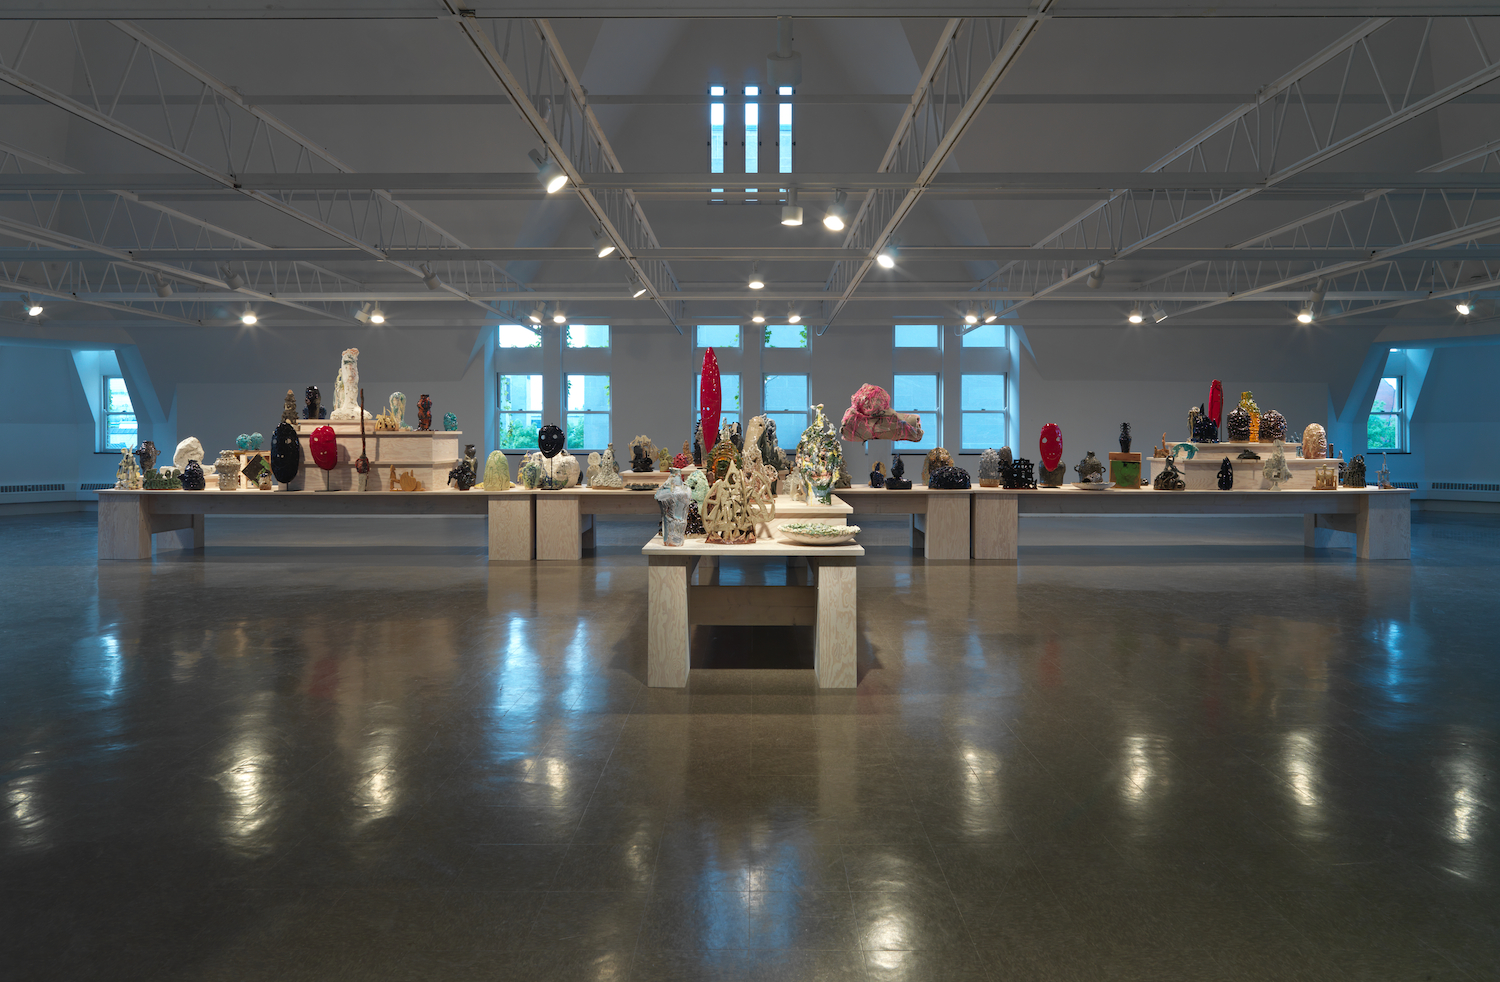 William J. O'Brien 2011 The Renaissance Society, Chicago Installation View